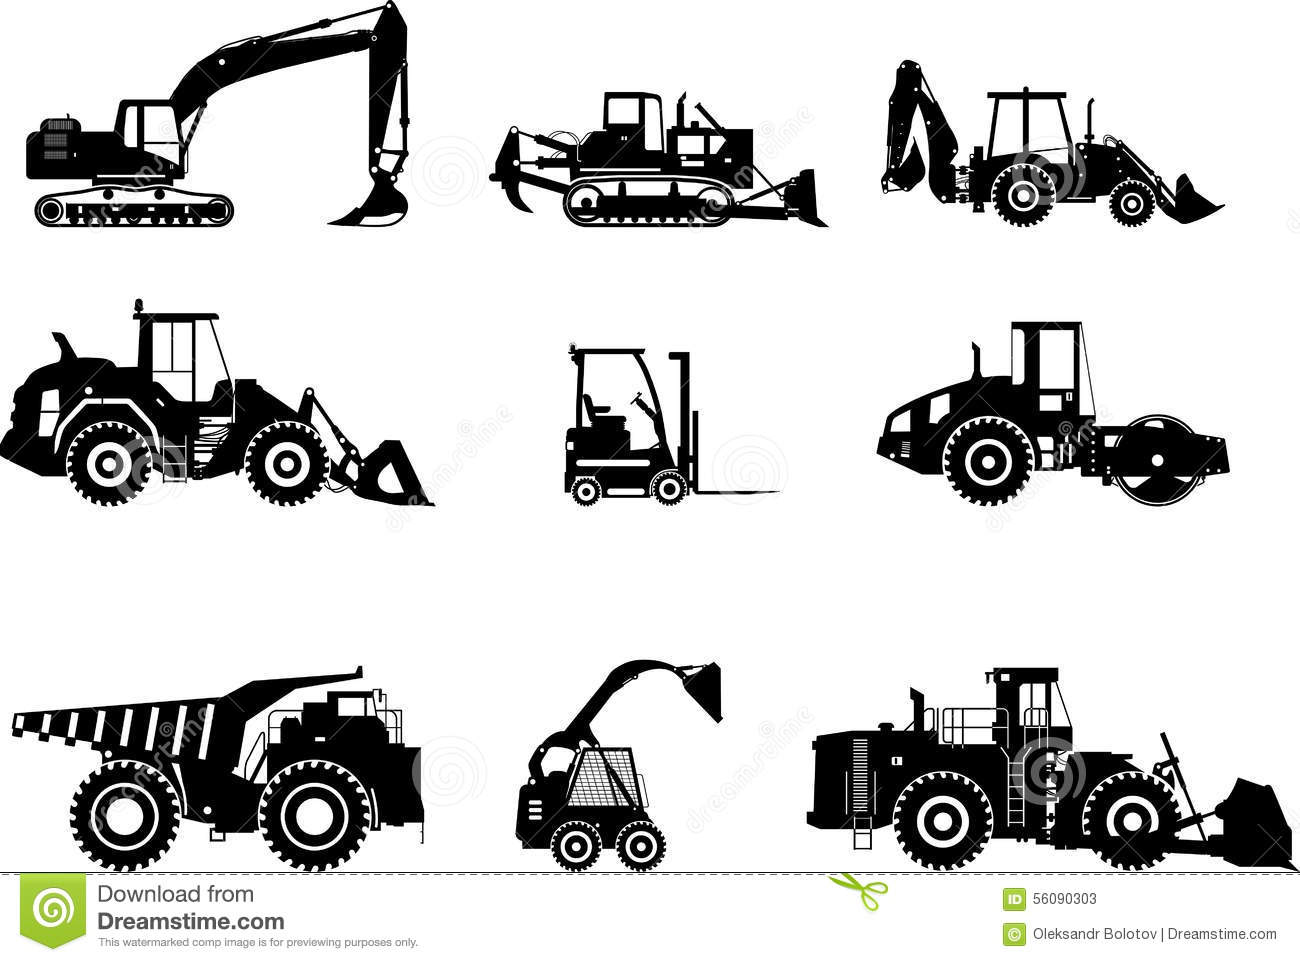 Stock Illustration Car Tread Silhouette White Background Image Presented Image43557213 furthermore Stock Illustration Set Heavy Construction Machines Vector Silhouette Illustration Equipment Machinery Image56090303 furthermore Royalty Free Stock Photo Construction Equipment Authors Illustration Vector Image34992395 together with Delco All Transistor Auto Radio August 1957 Radio Tv News also Royalty Free Stock Images Tow Truck Silhouettes Silhouette Set White Background Image35599029. on truck car audio